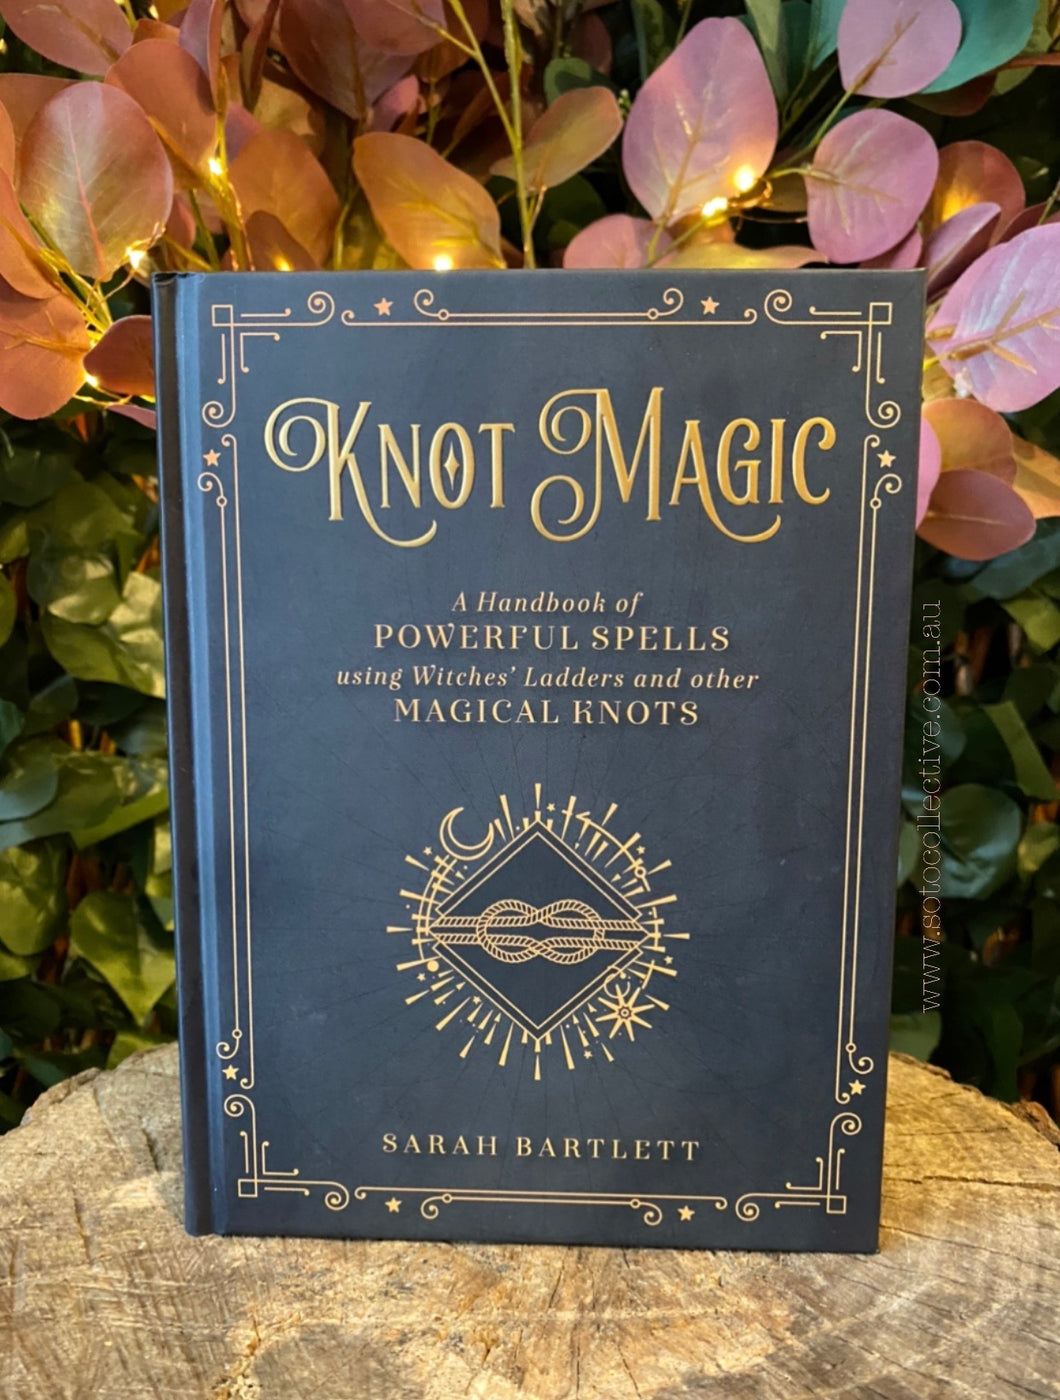 Knot Magic - A handbook of spells using witches ladders and other magical knots